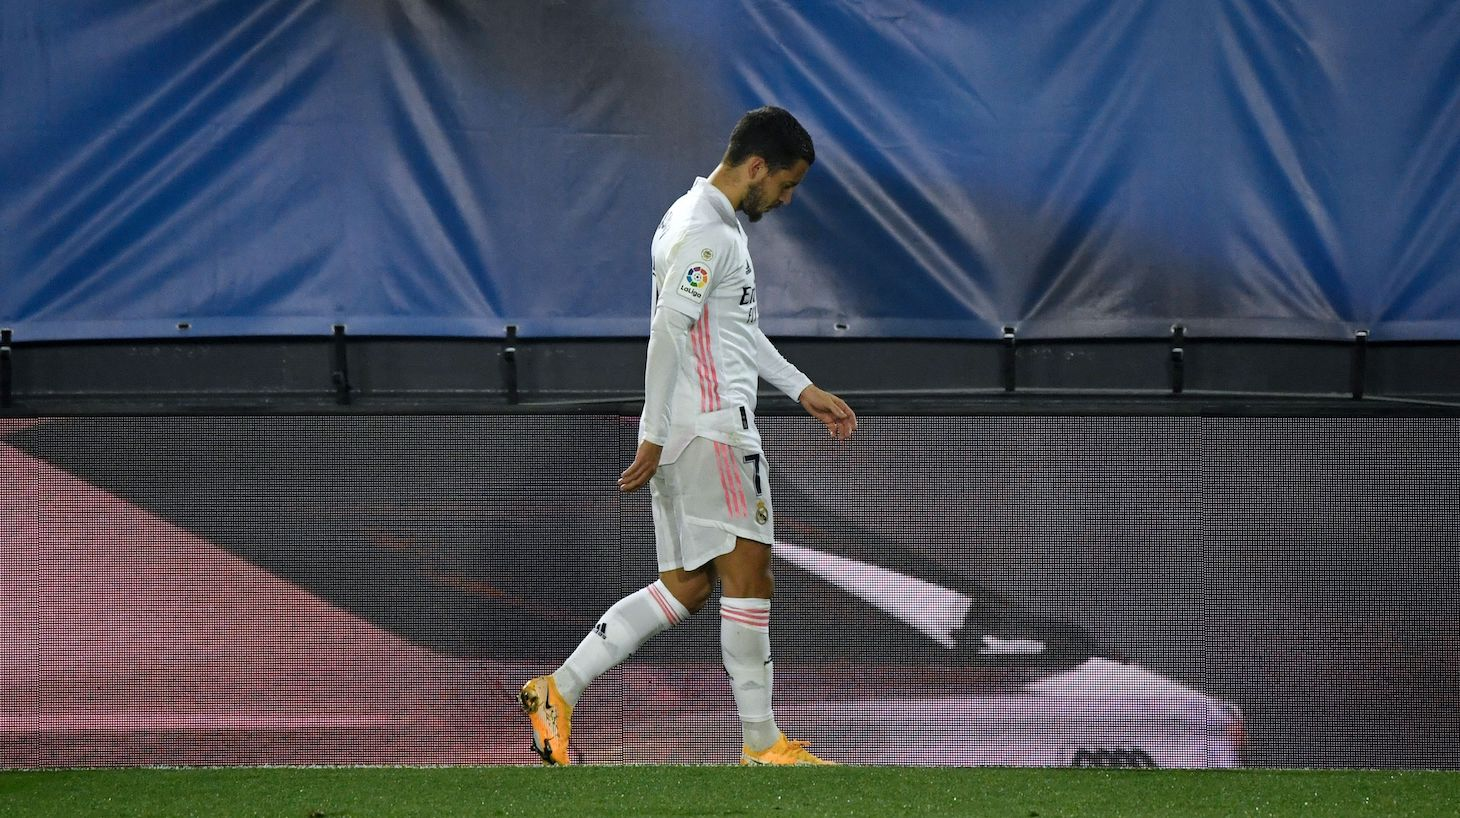 Real Madrid's Belgian forward Eden Hazard leaves the pitch during the Spanish League football match between Real Madrid and Deportivo Alaves at the Alfredo Di Stefano stadium in Madrid, on November 28, 2020.